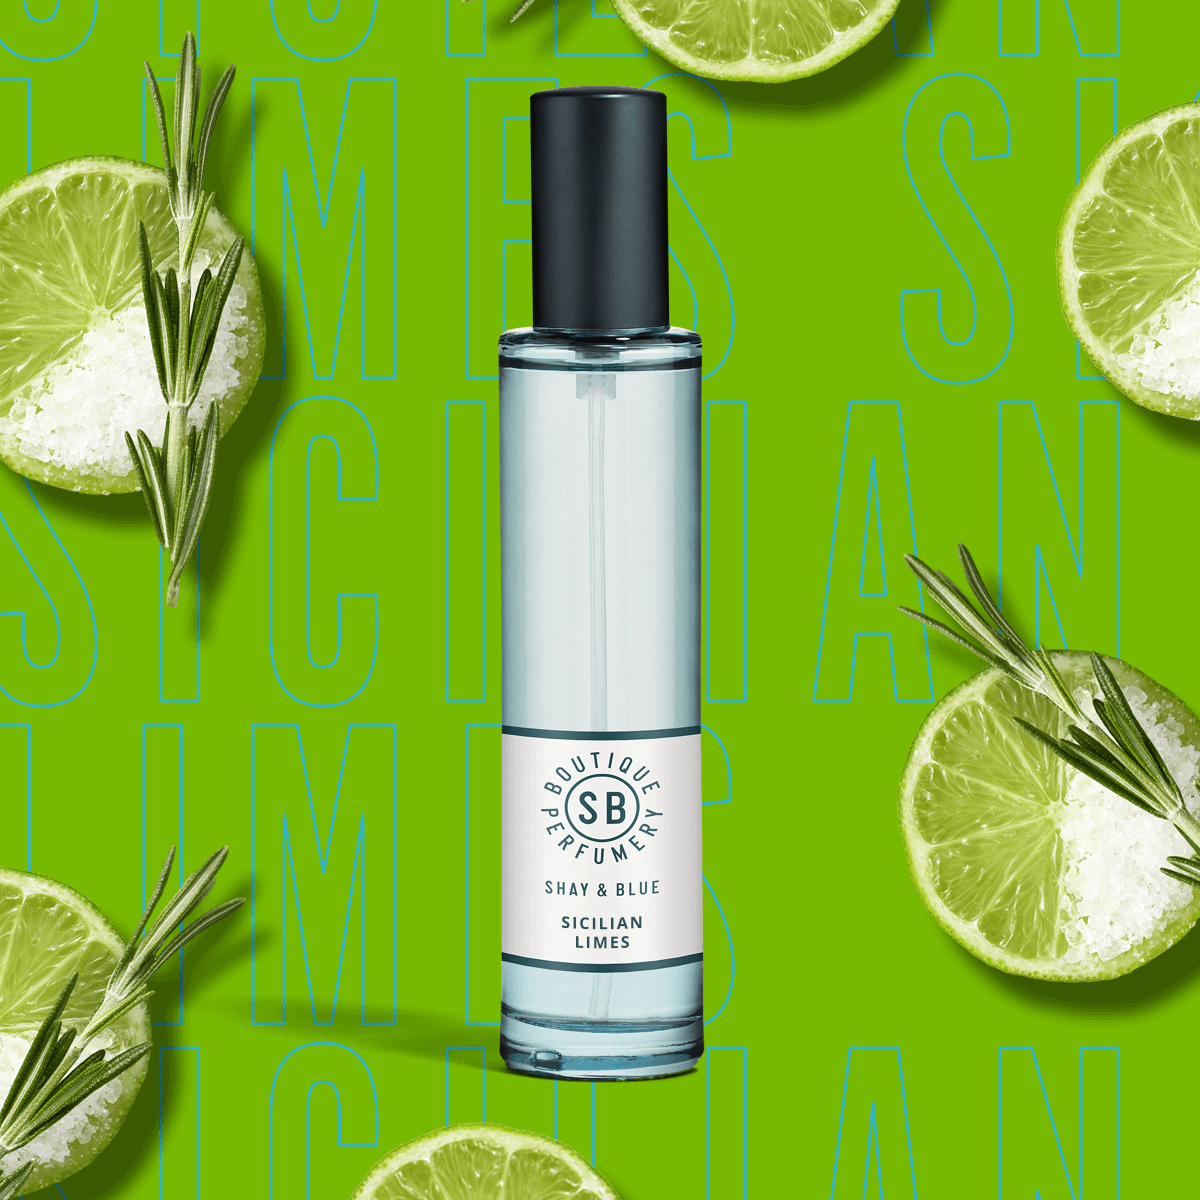 Sicilian Limes Fragrance 30ml | Tangy limes with a happy-hour hit of a salty margarita, rosemary and moss | Clean All Gender Fragrance | Shay & Blue